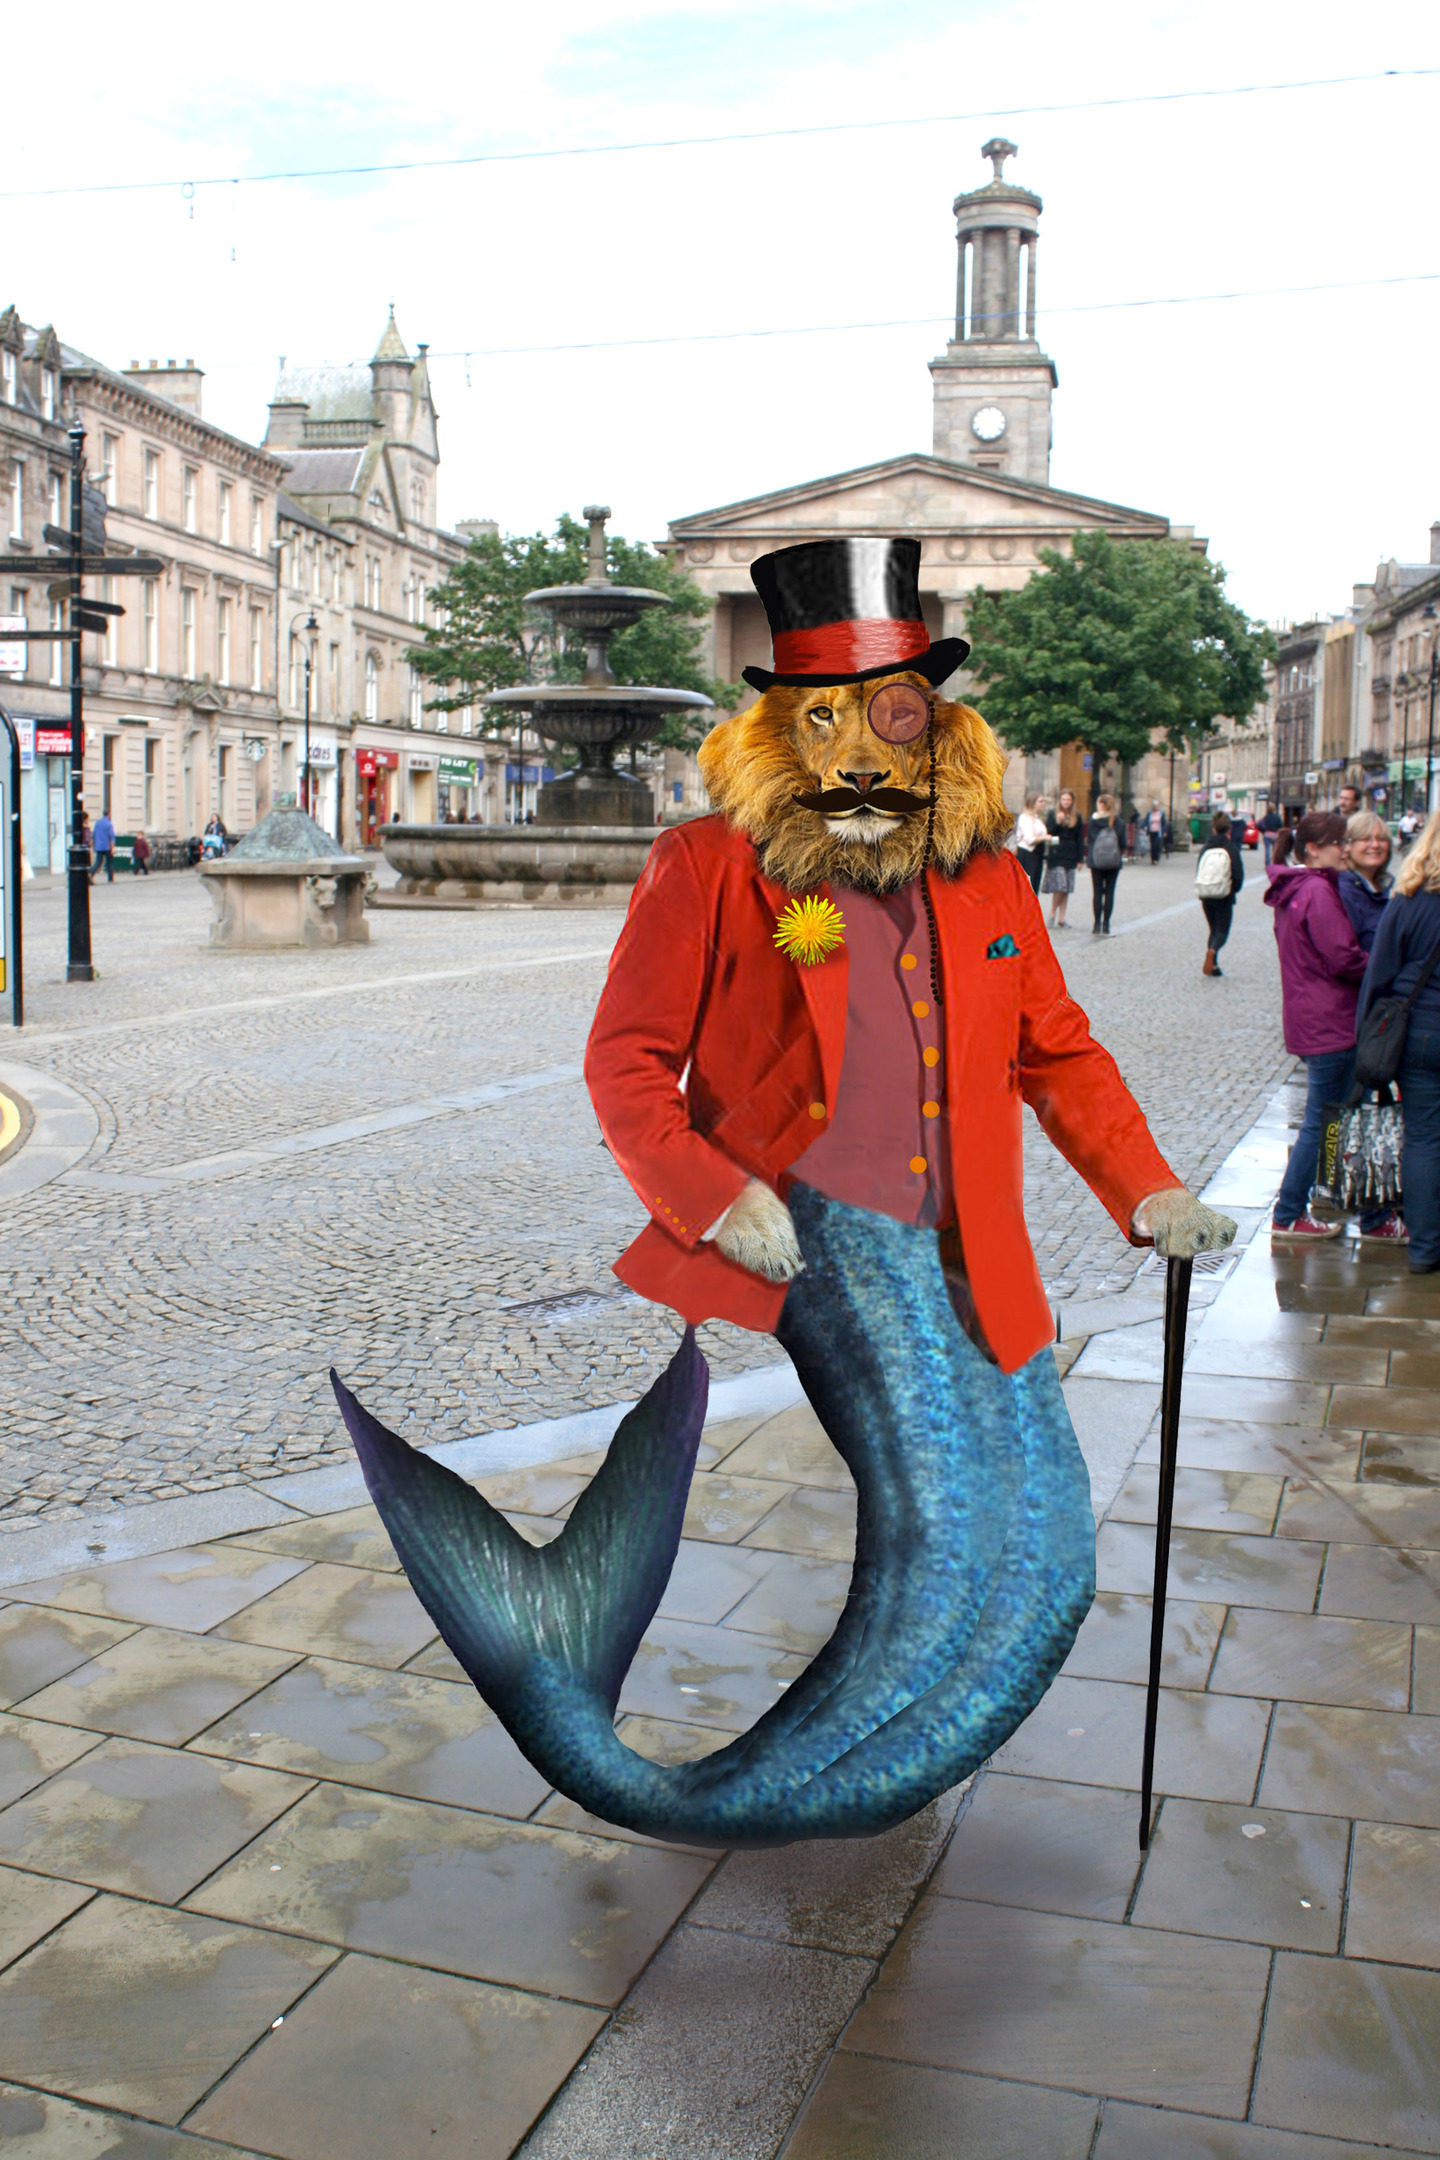 This curious creation will soon be a focal point of Elgin's town centre